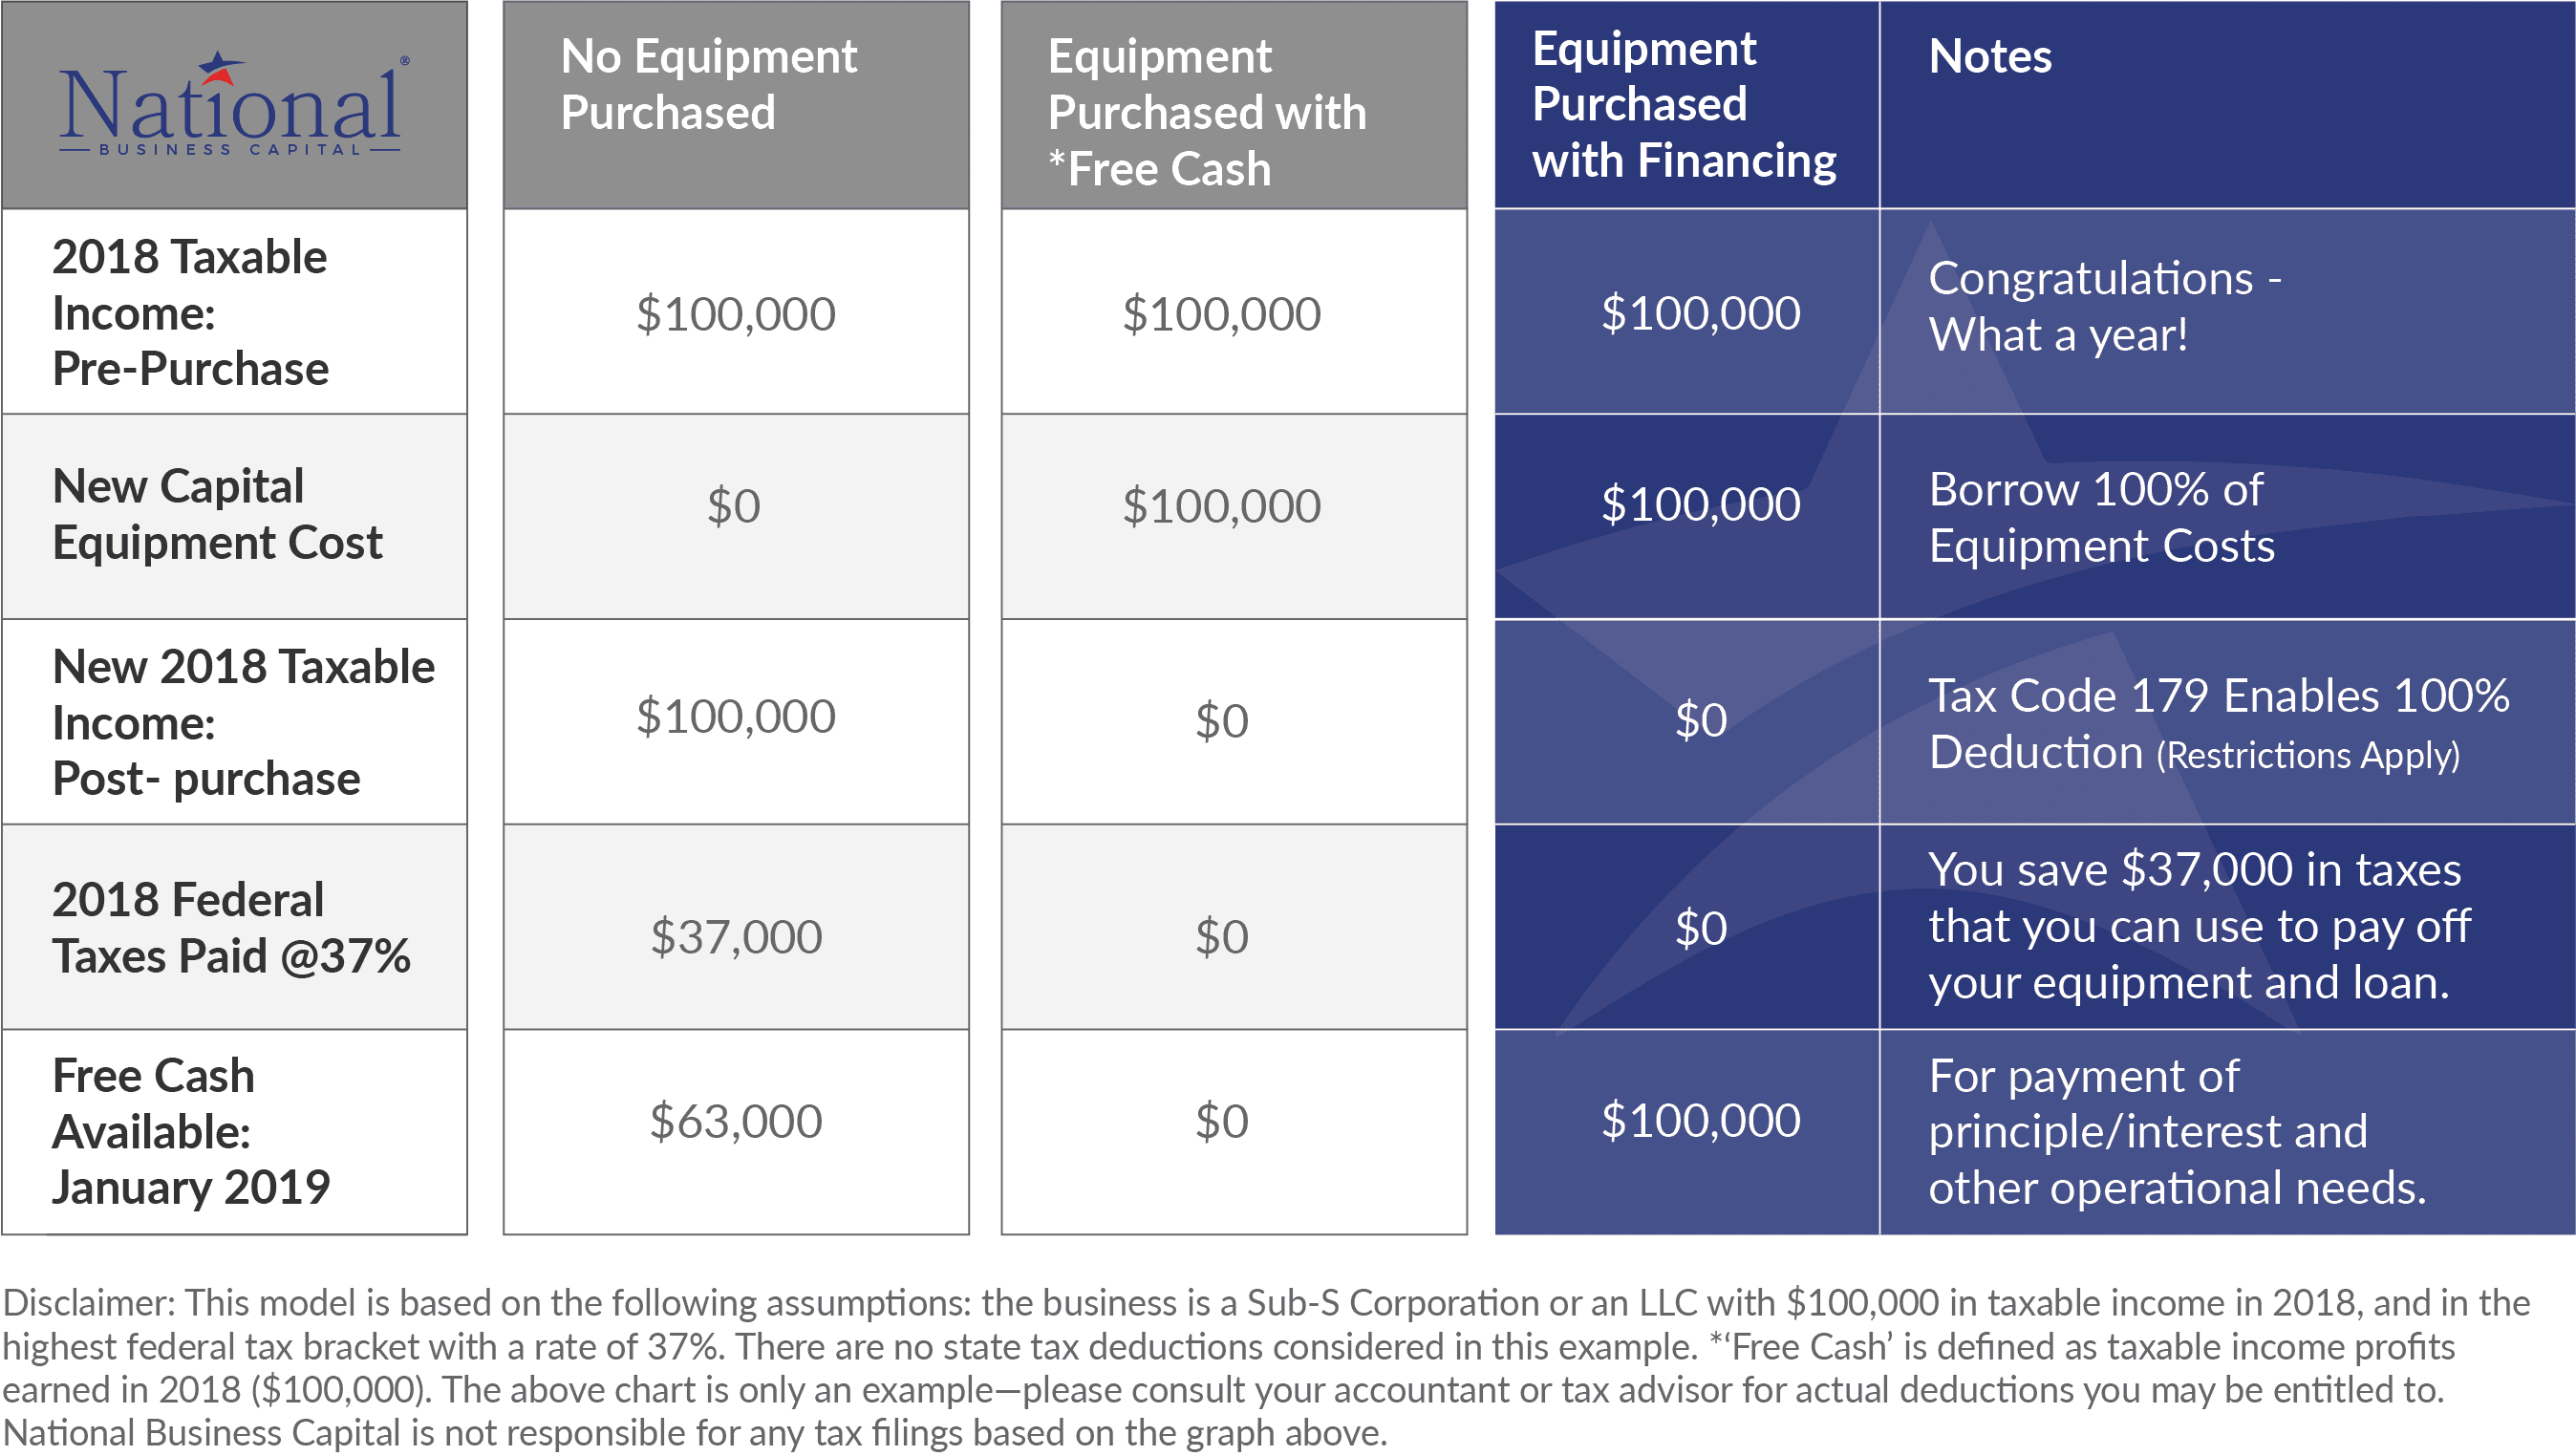 Trump's Equipment Tax Code Works for You